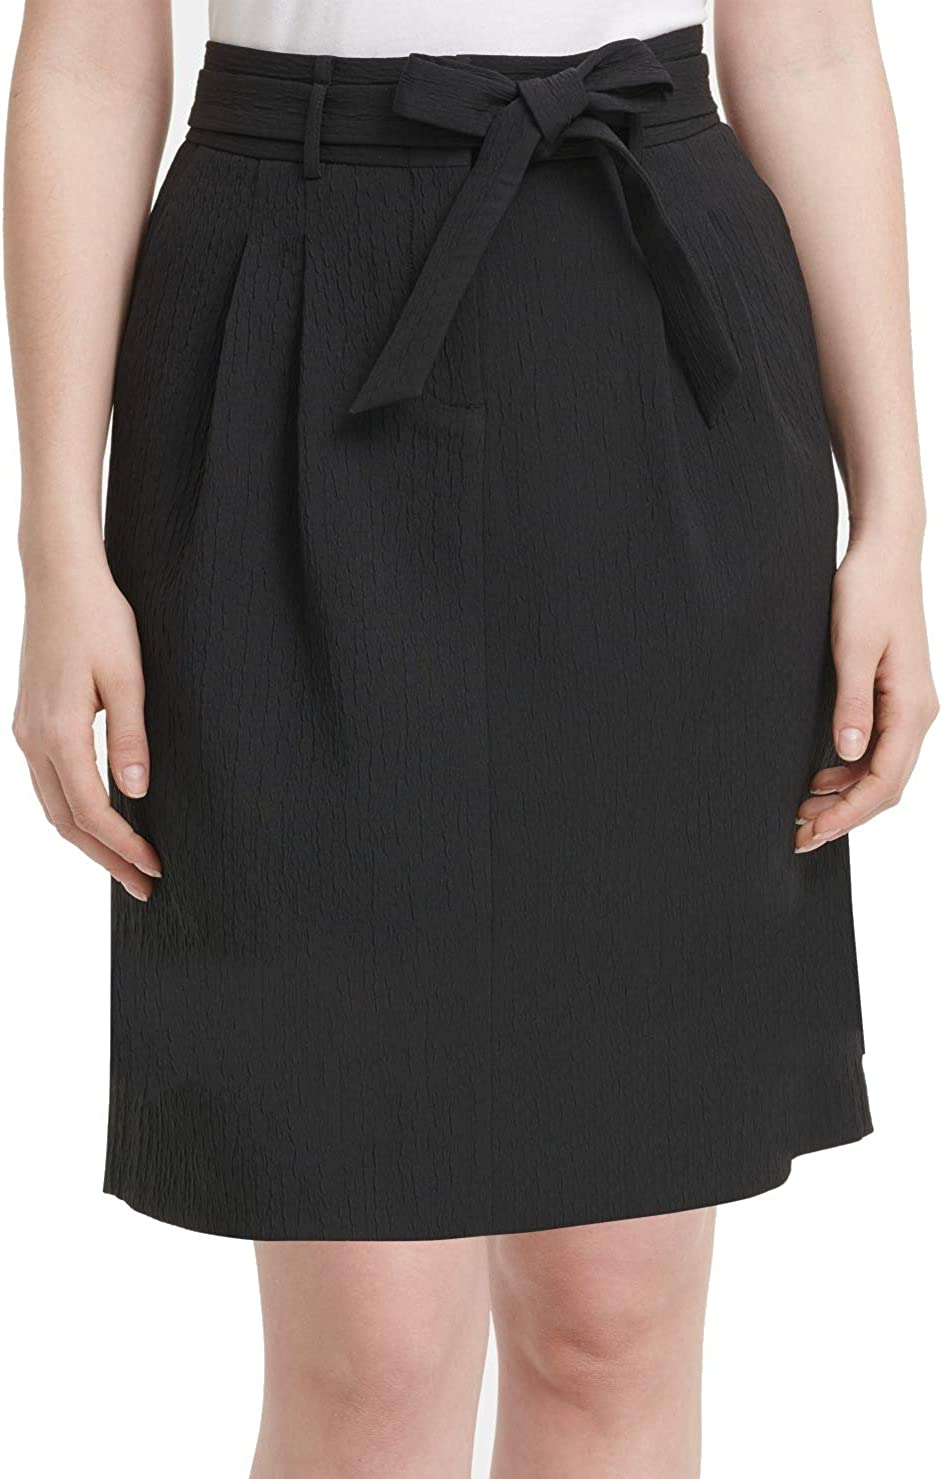 DKNY Womens Black Belted Above The Knee Pencil Wear to Work Skirt Size